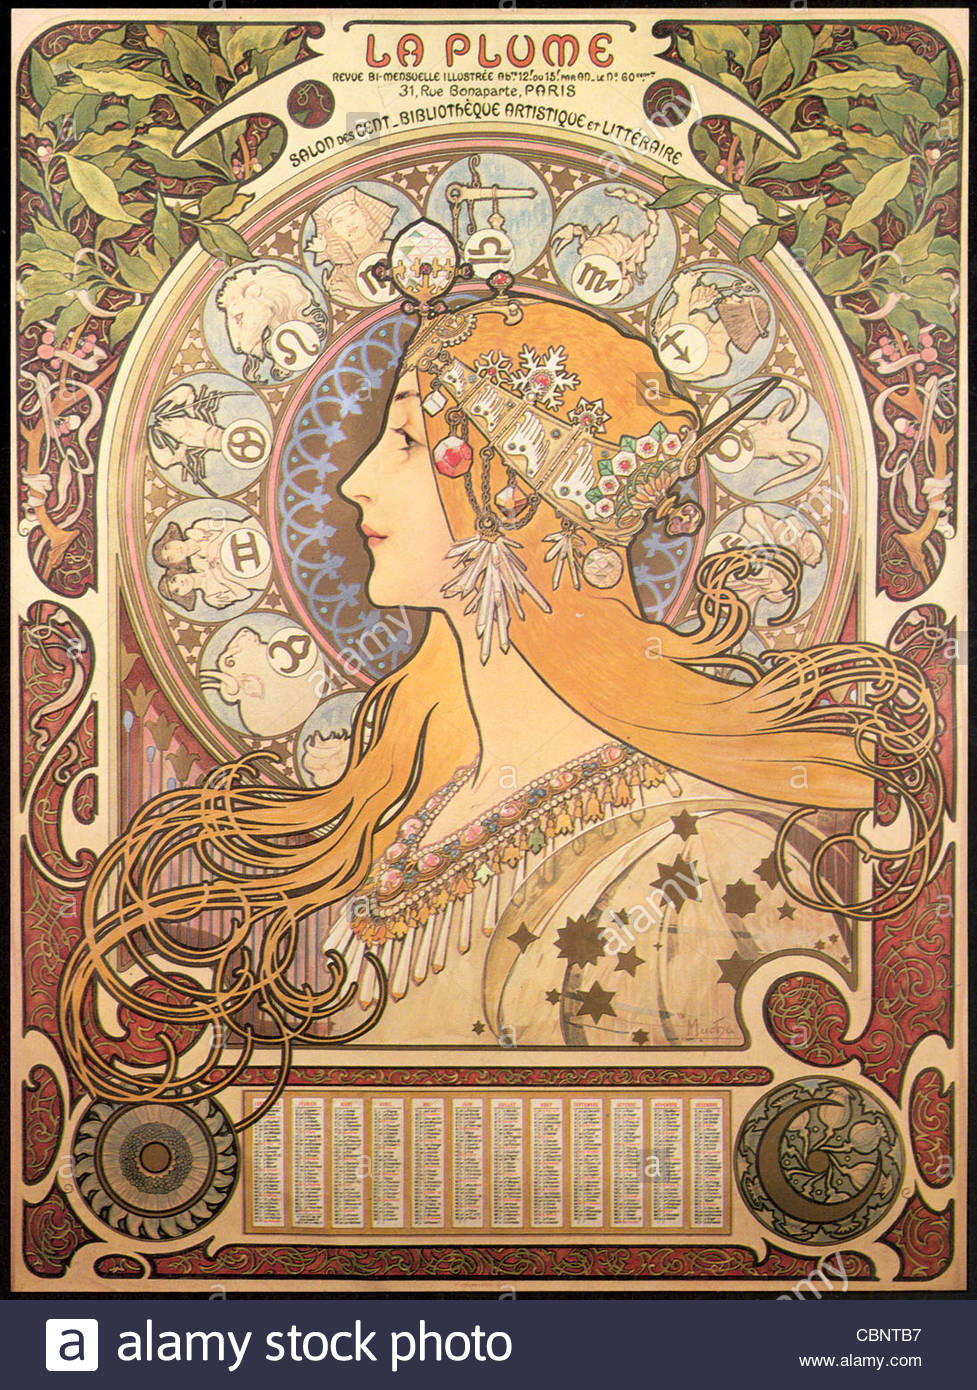 Alphonse Mucha Zodiac Stock Photo: 41662075 - Alamy